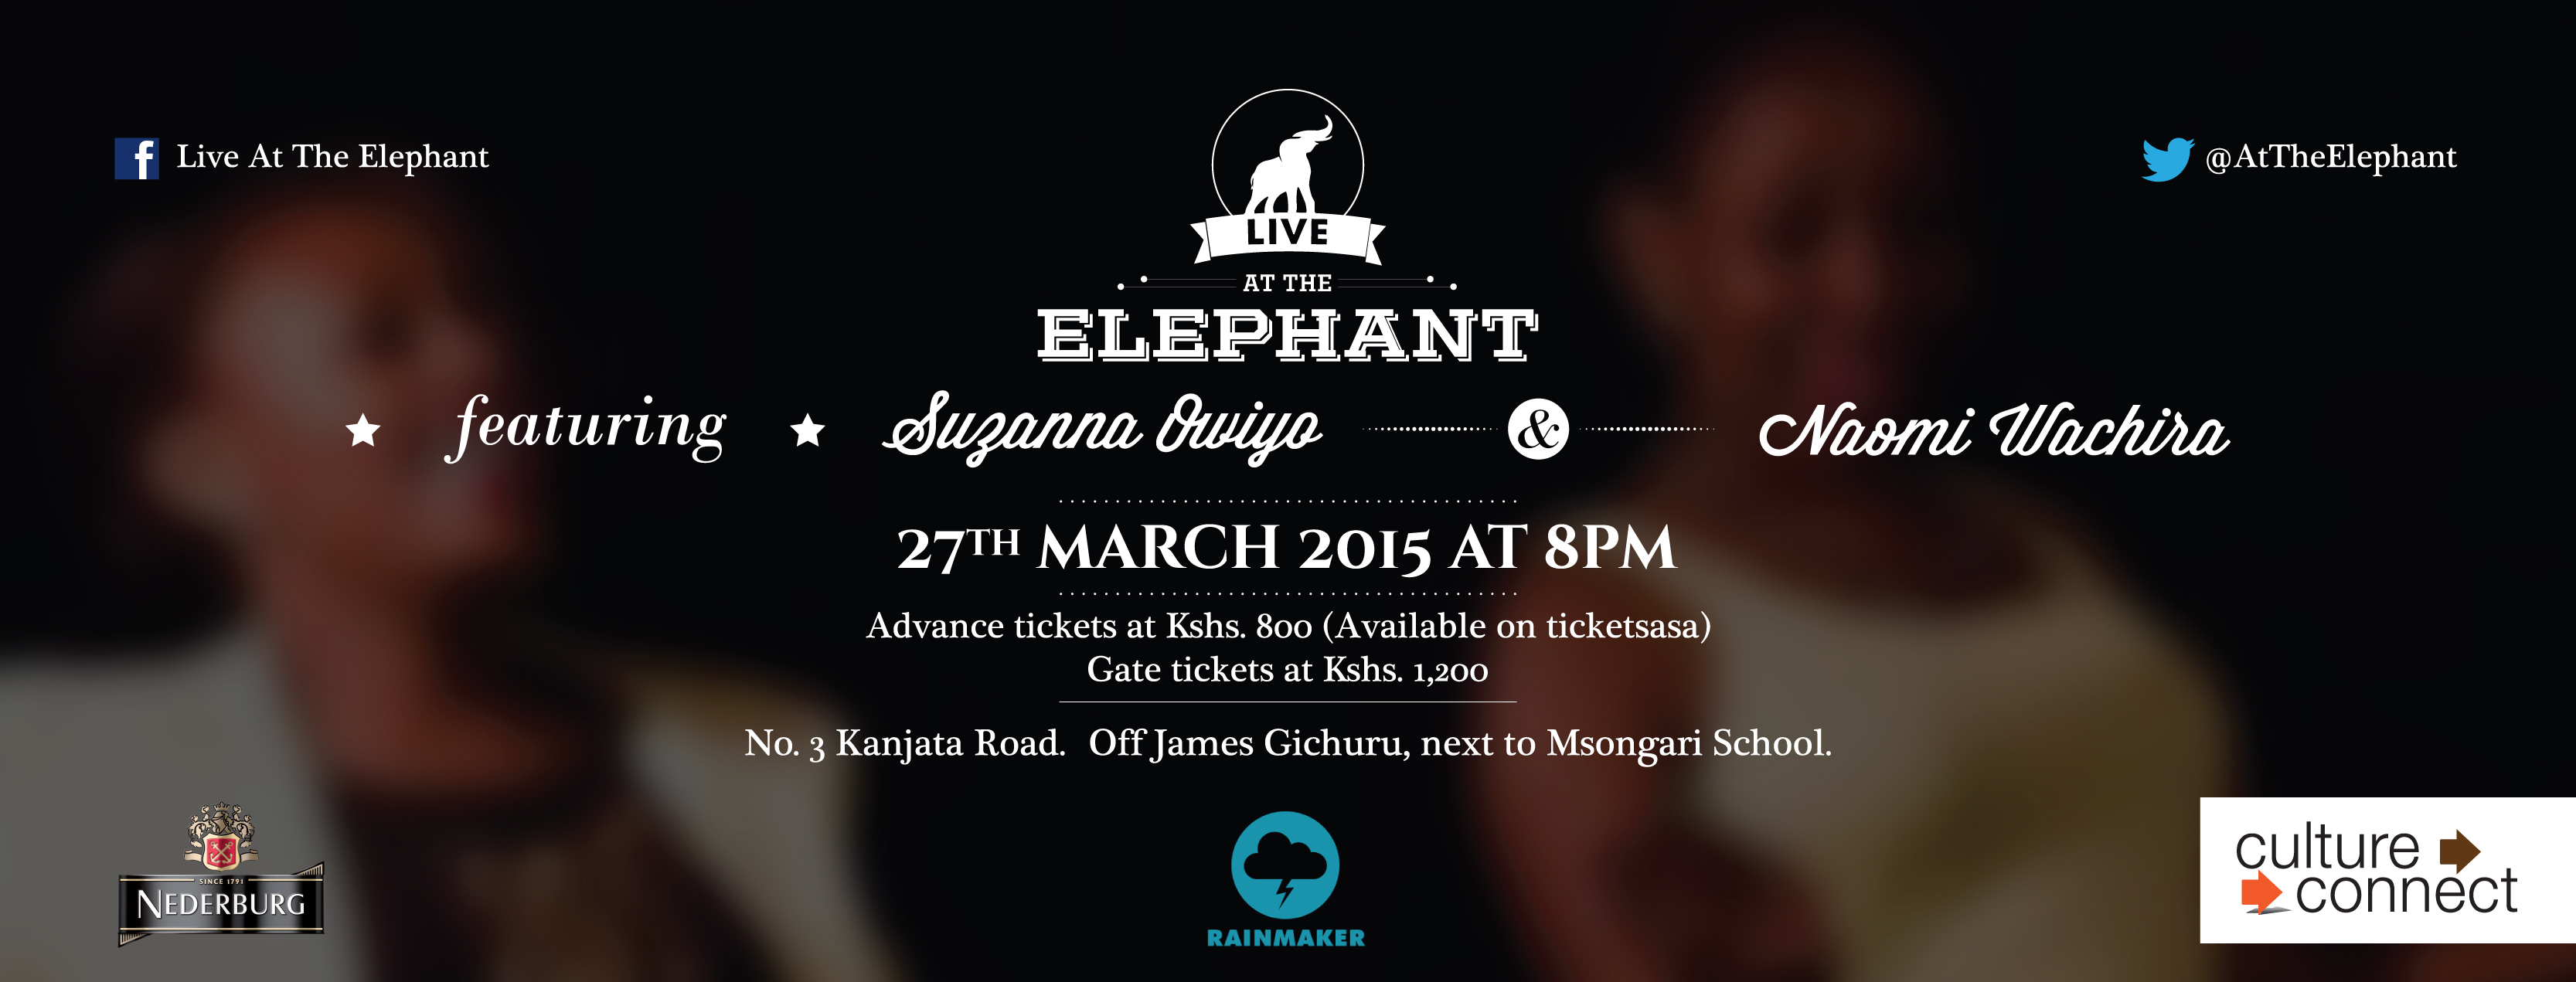 SUzanna Owiyo and Naomi Wachira live at the Elephant